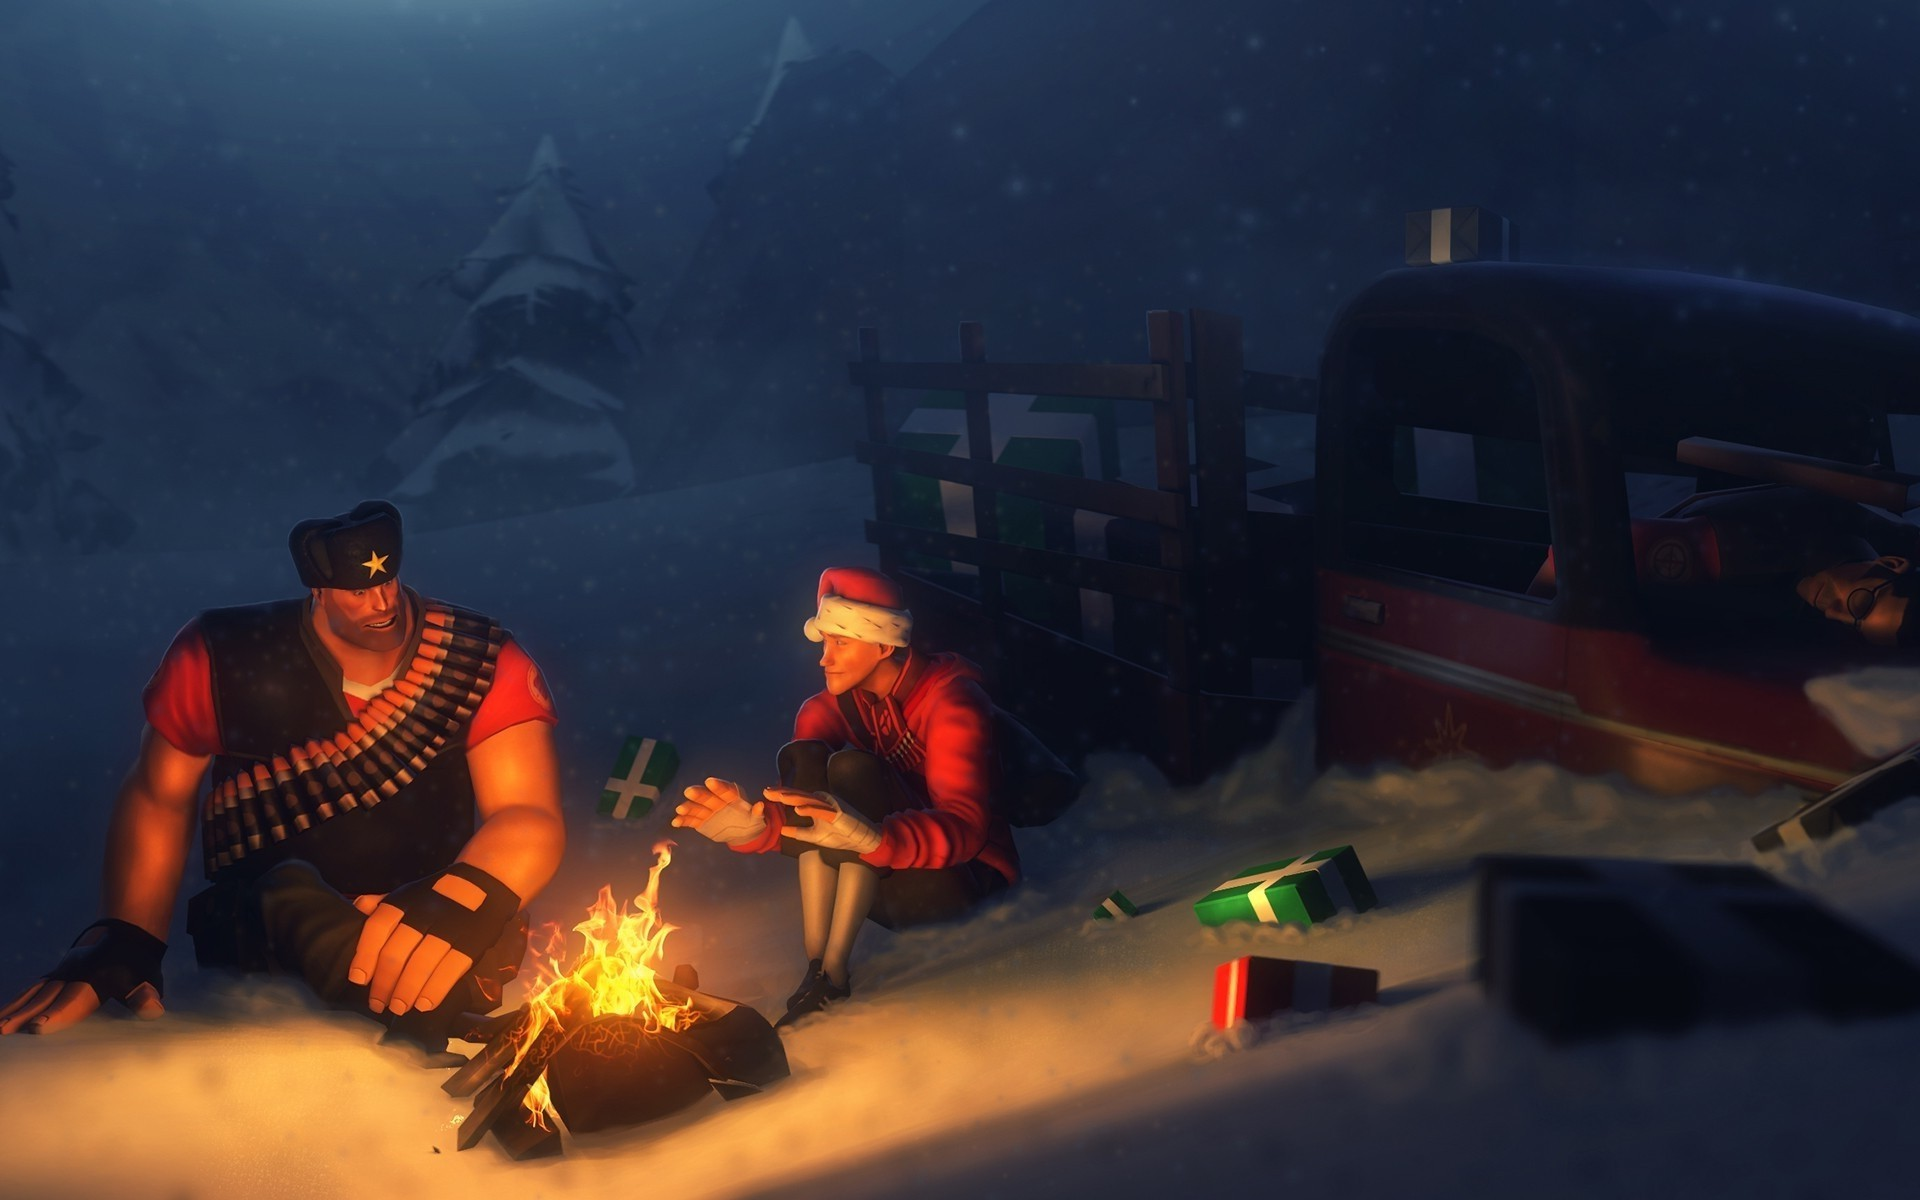 1920x1200 Scout (character), Sniper (TF2), Video Games, Digital Art, Team Fortress 2,  Fire, Camping, Presents, Happy New Year, Truck, Heavy, Snow, Campfire  Wallpapers ...